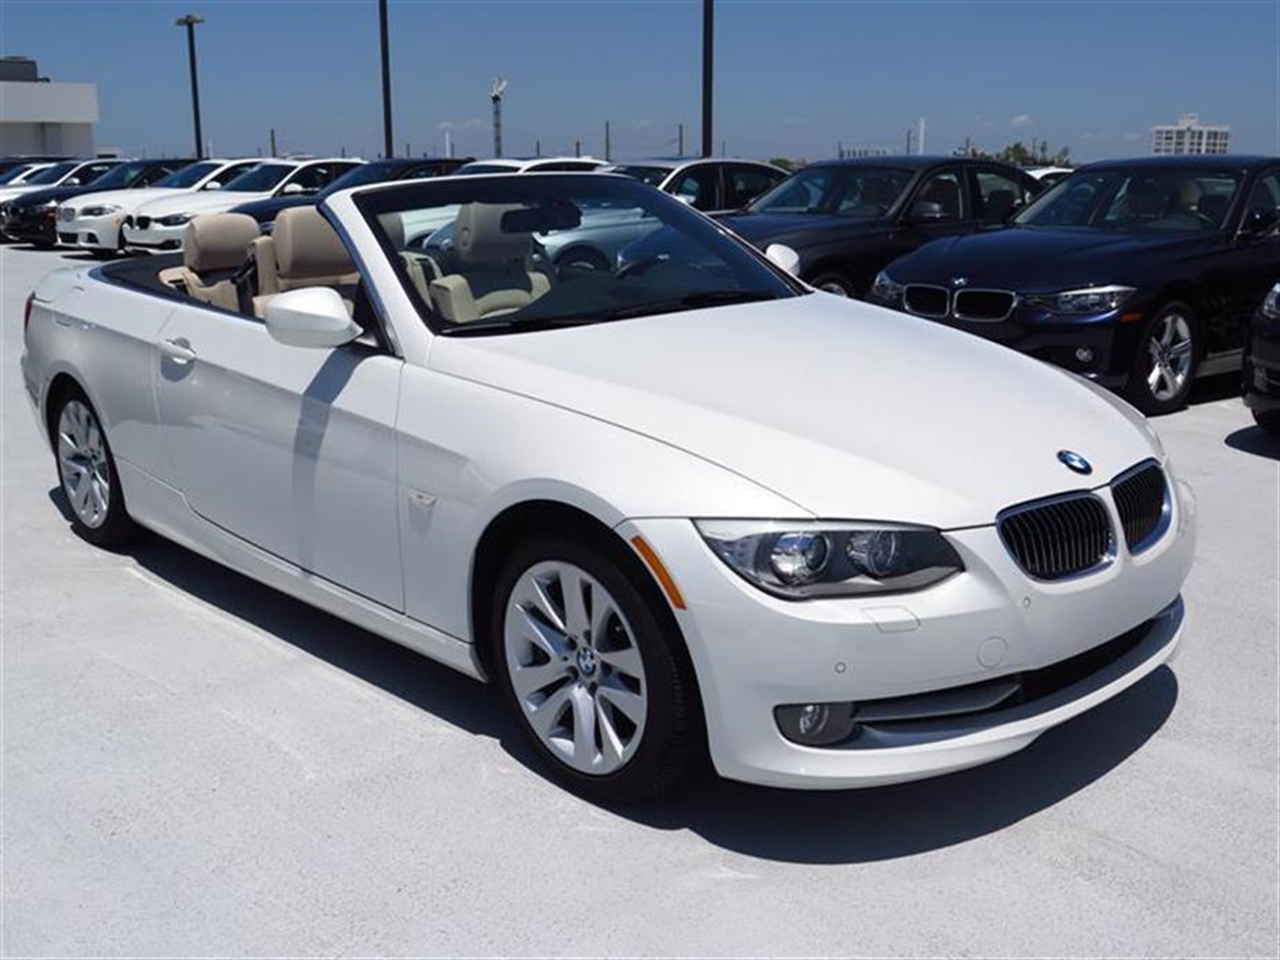 2012 BMW 3 SERIES 2dr Conv 328i 8138 miles 10-way power front bucket seats with 2-way manual head